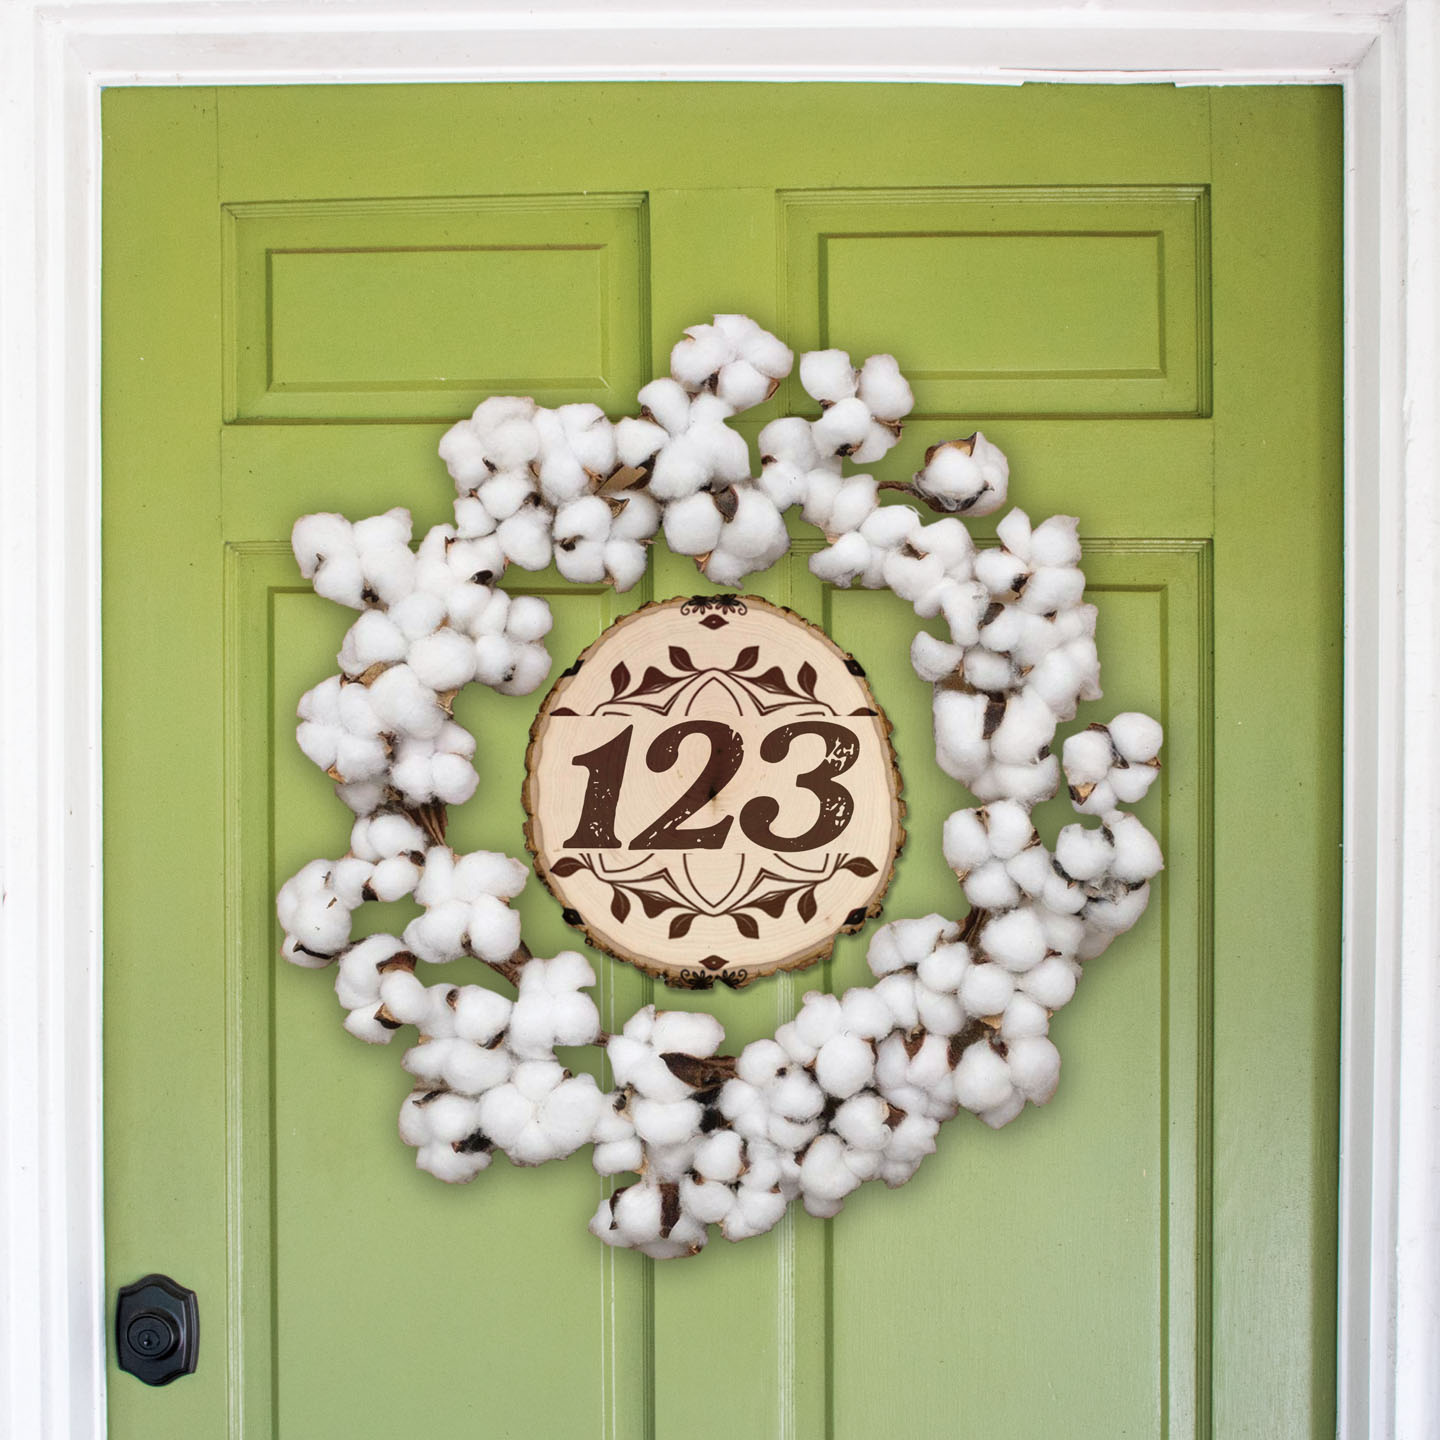 10 Creative Ways to Display House Numbers, Straight from the Experts